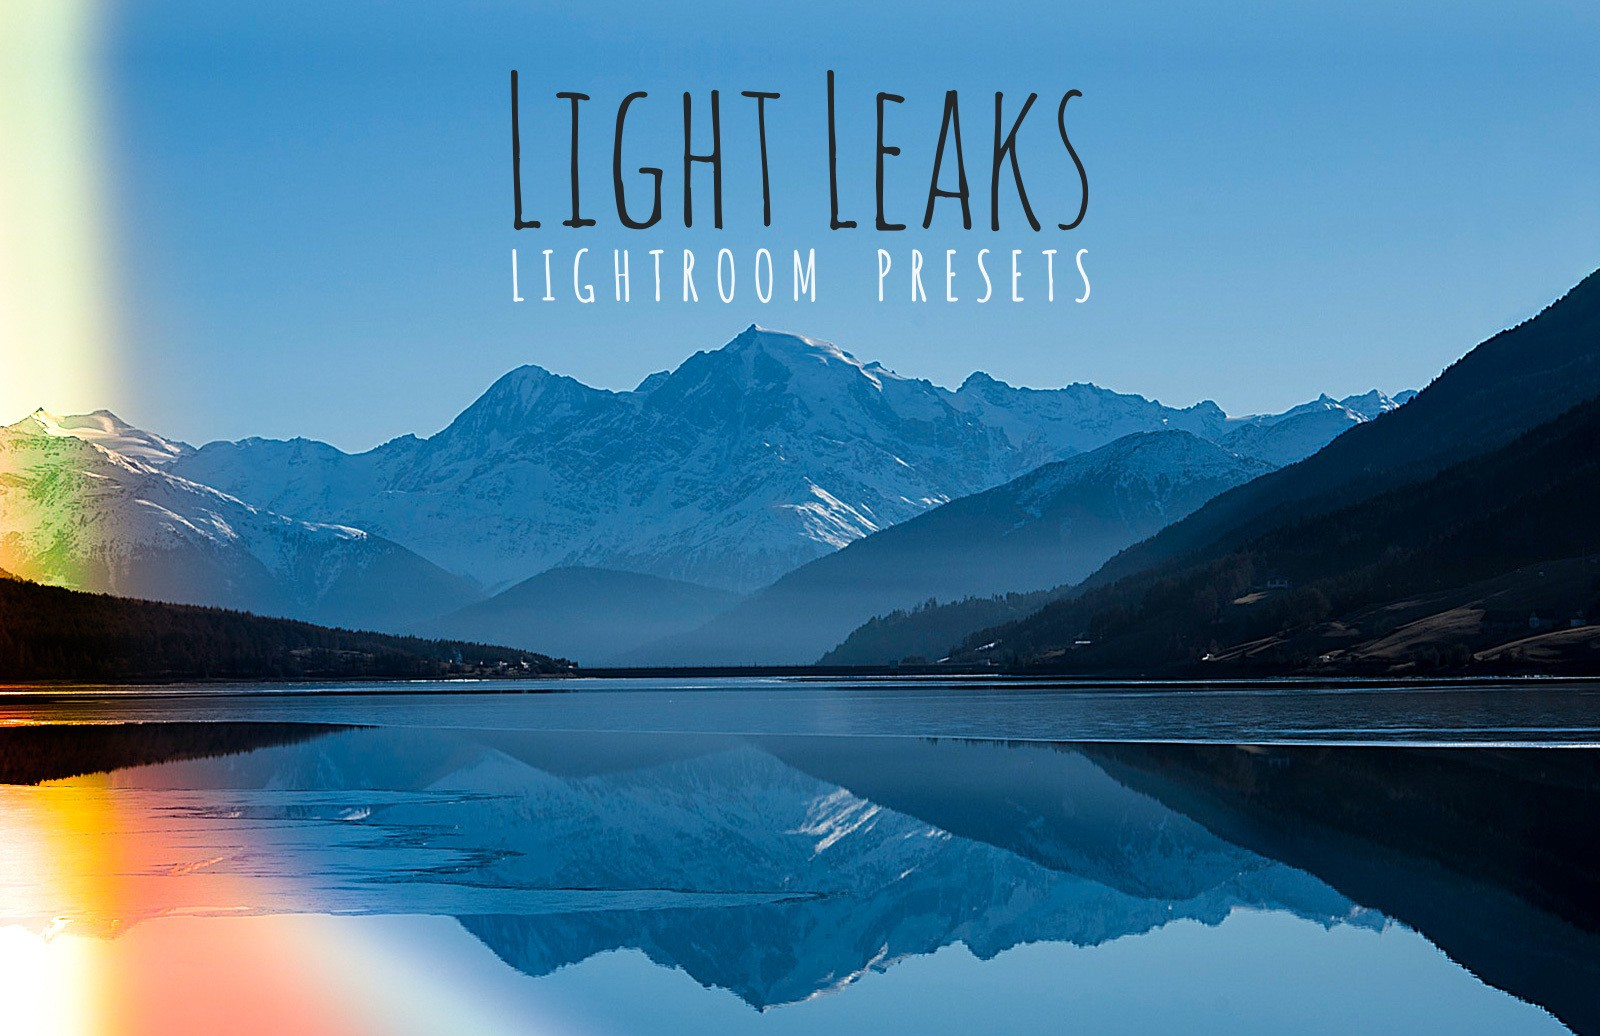 Light Leaks Lightroom Presets 2